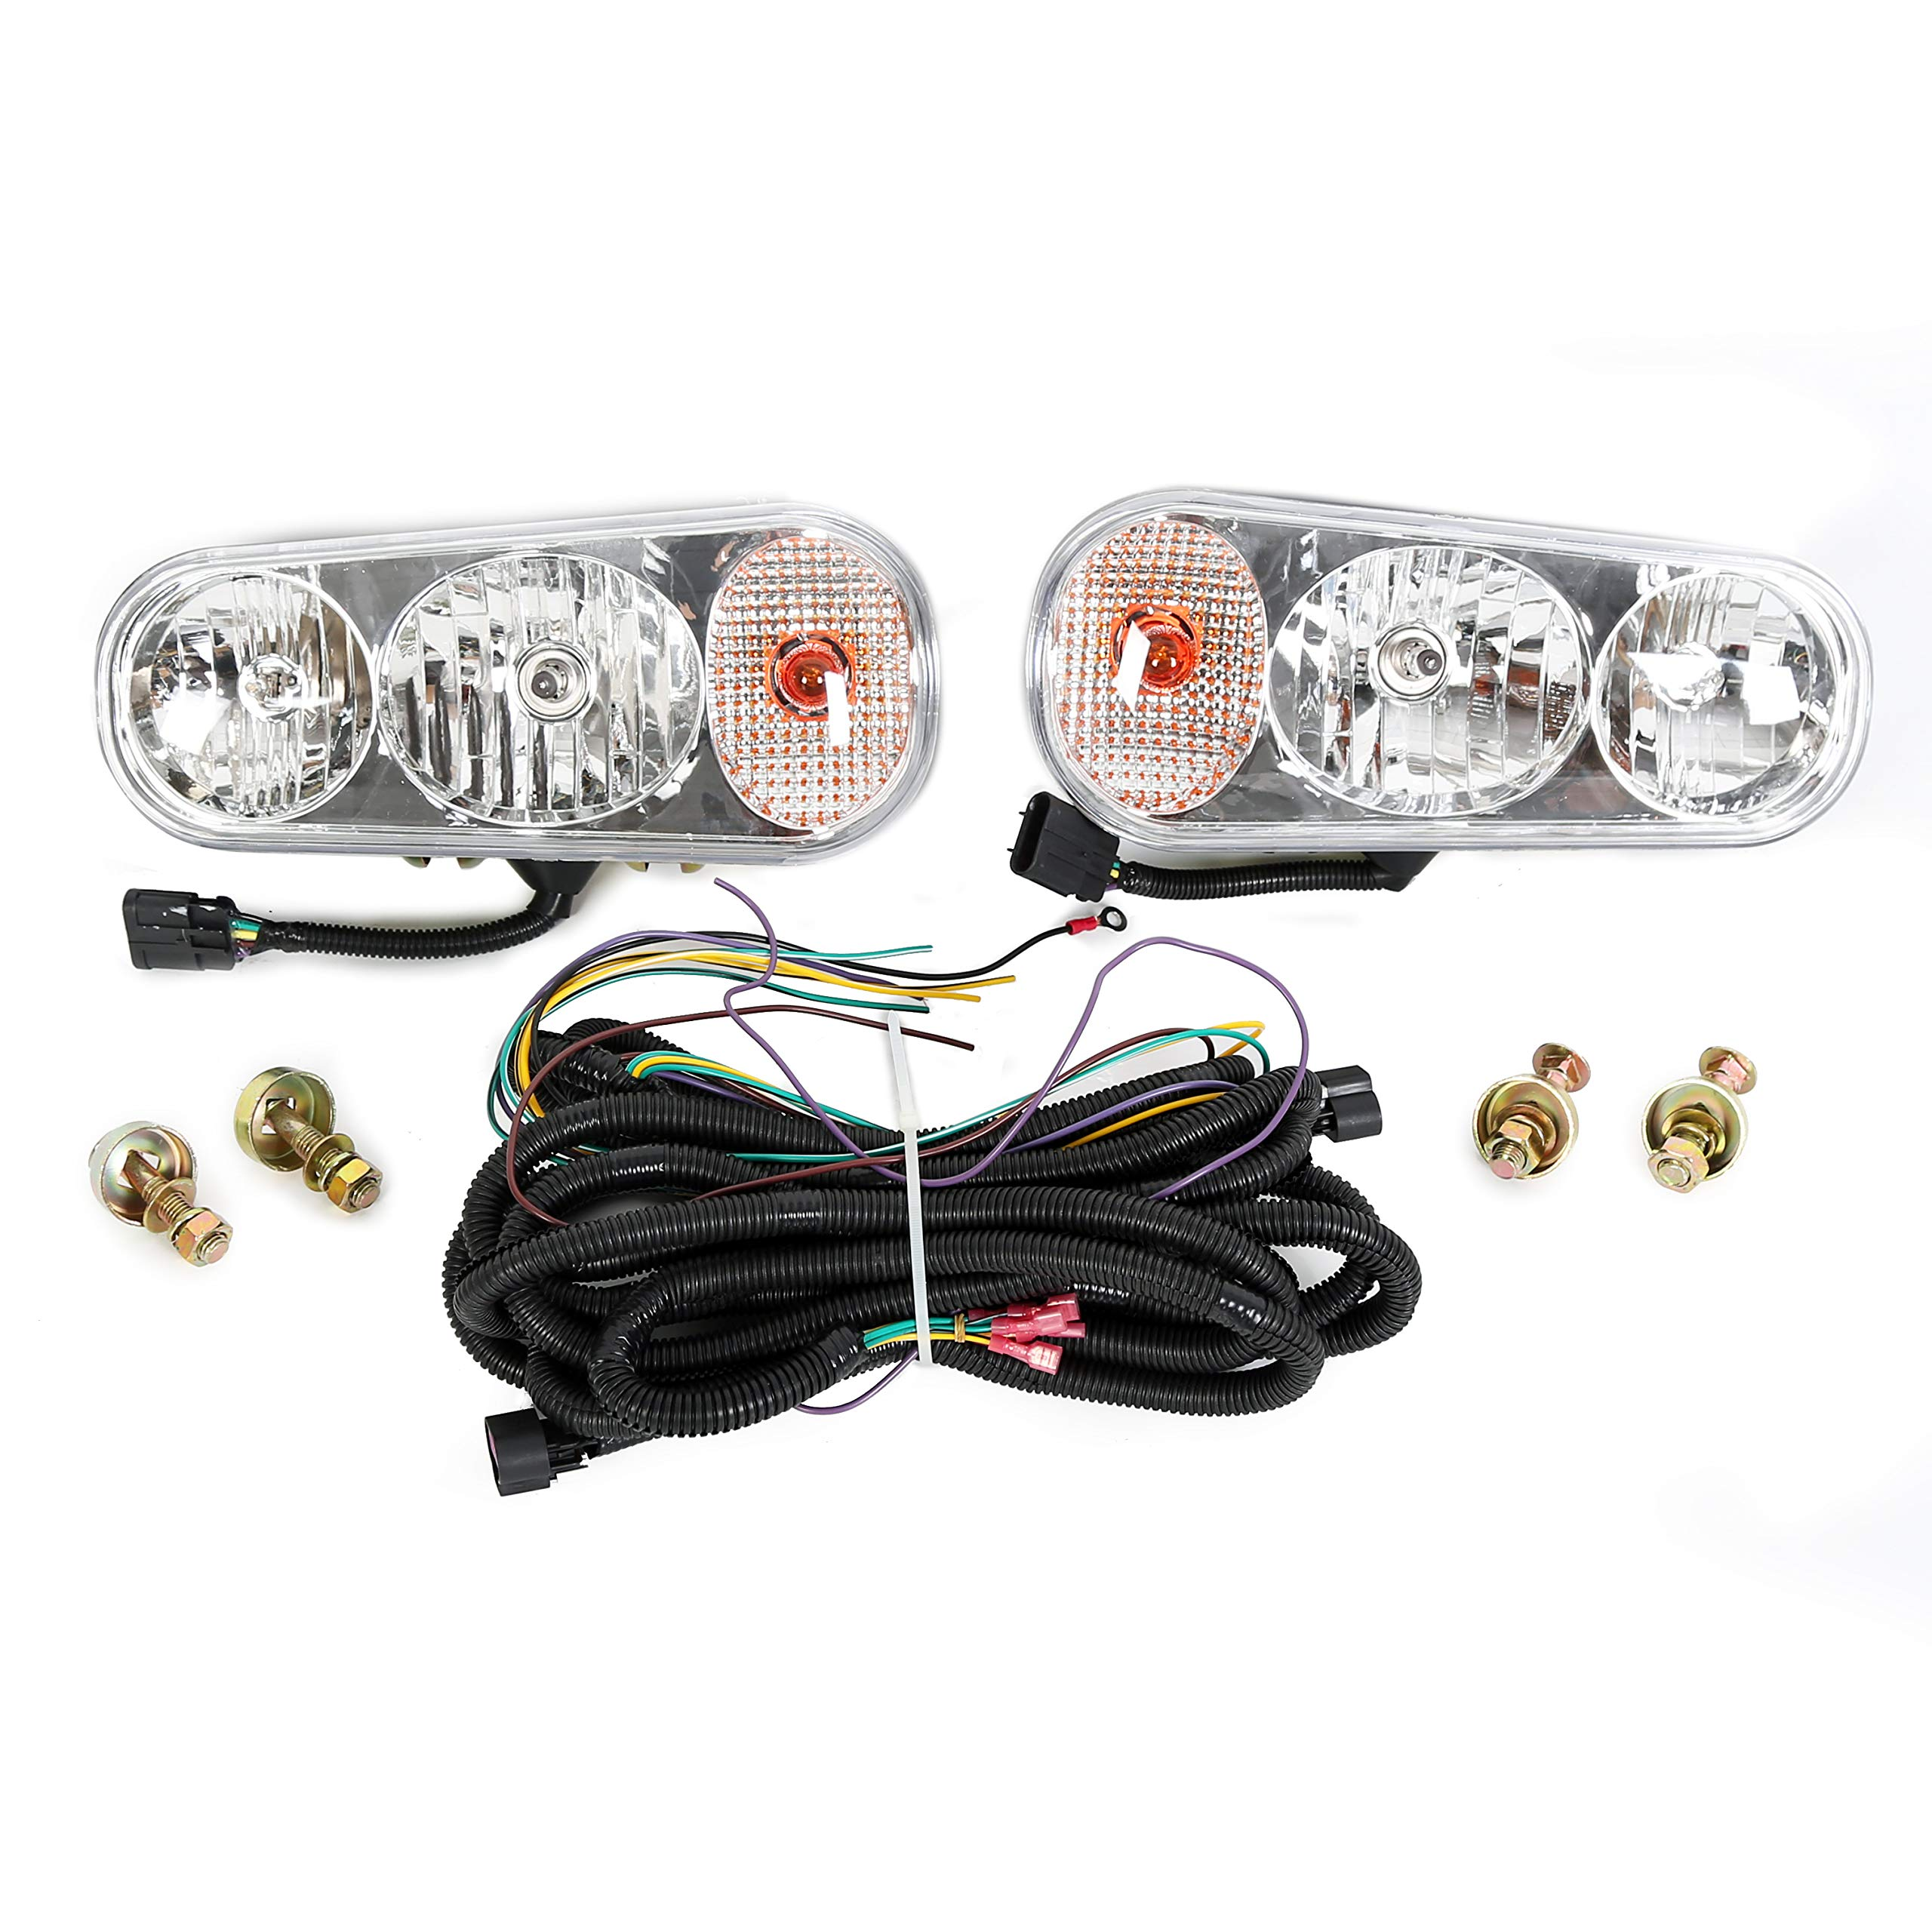 ECOTRIC Universal Halogen Snow Plow Lights Kit for Boss Western Meyer Blizzard Curtis by ECOTRIC